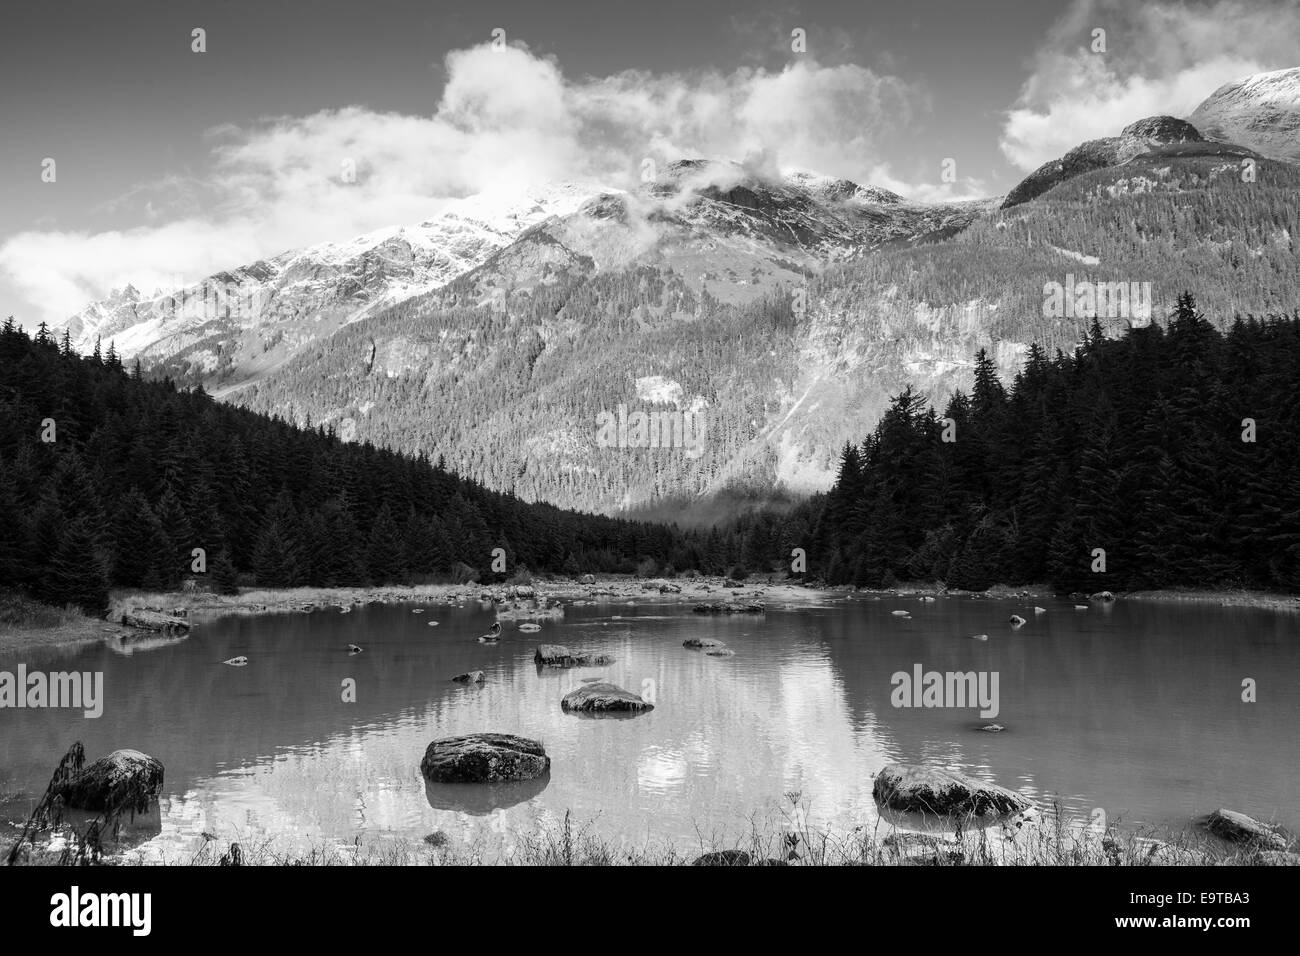 Chilkoot River near Haines Alaska in fall in  black and white. - Stock Image